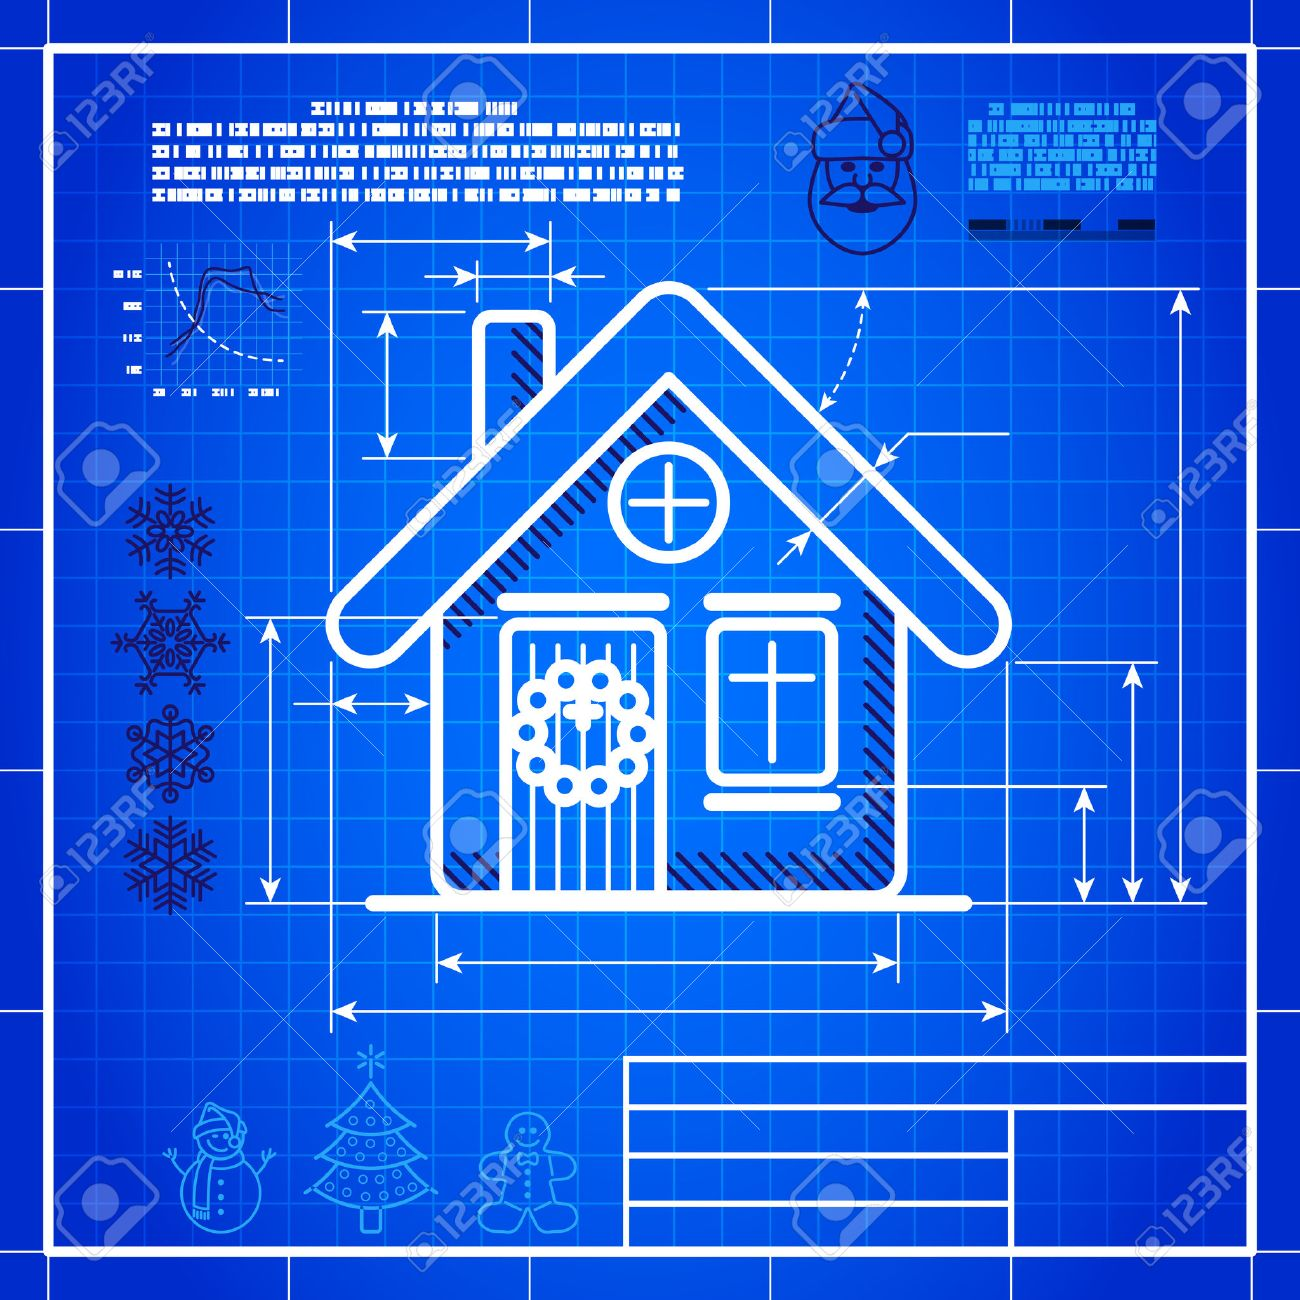 Christmas symbol stylized blueprint technical drawing white christmas symbol stylized blueprint technical drawing white symbol on blue grid background stock vector malvernweather Images